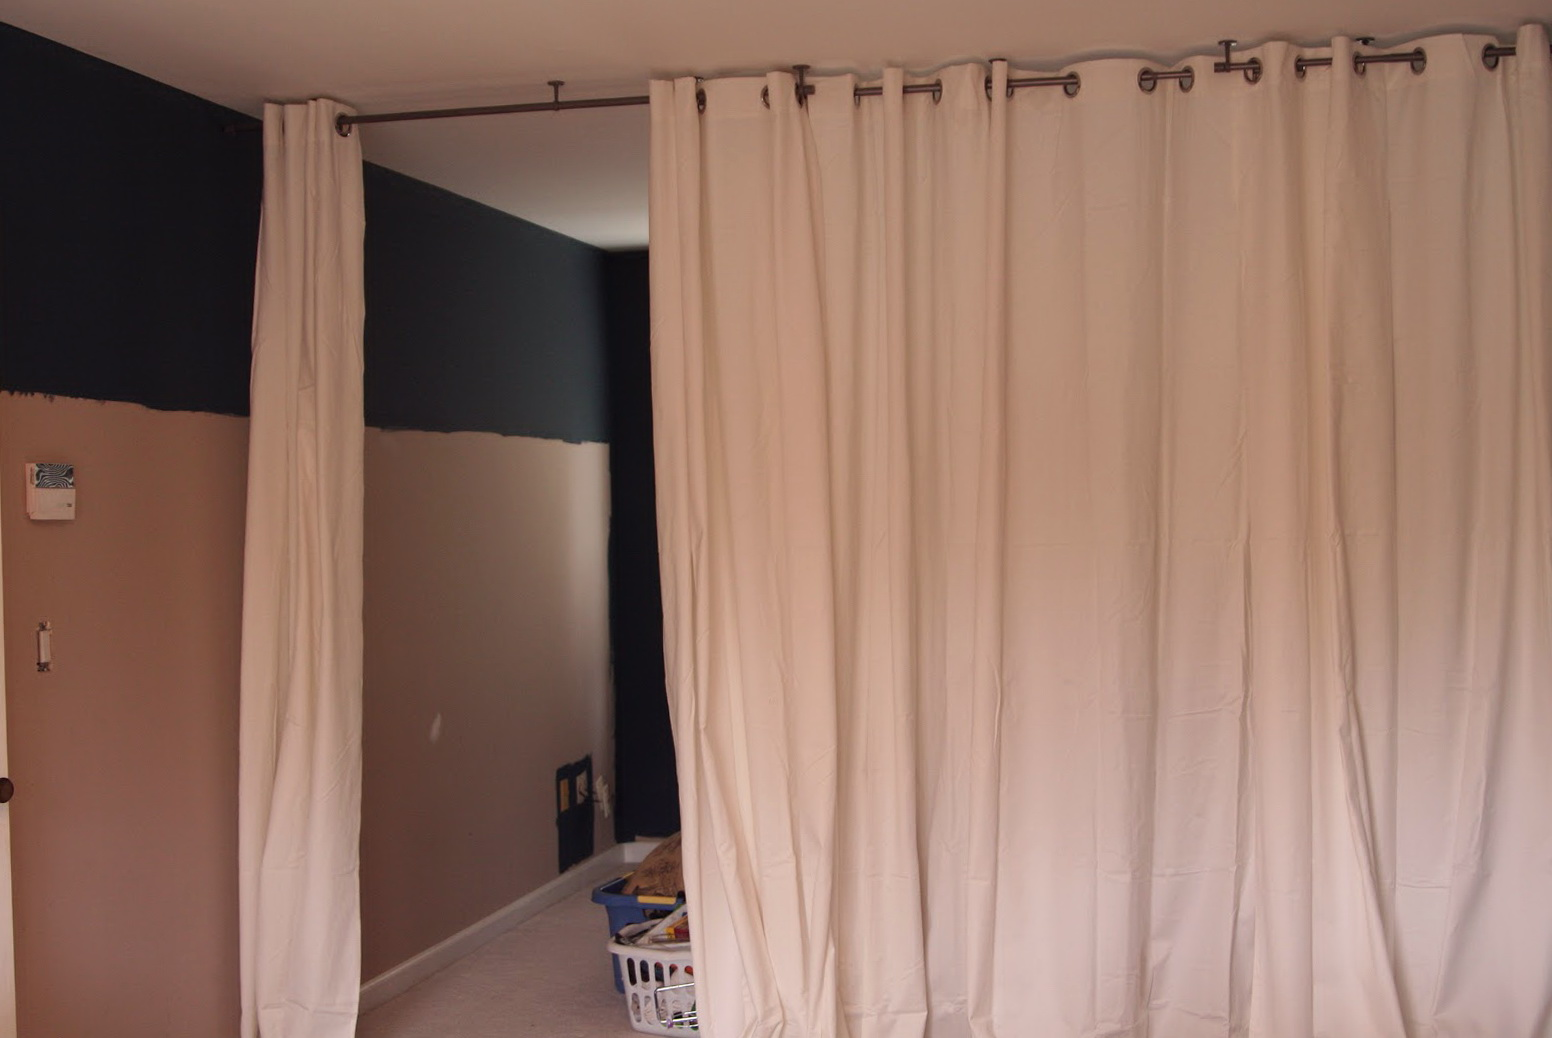 Room Divider Curtains | Hanging Curtain Room Dividers | Room Divider Curtain Walmart